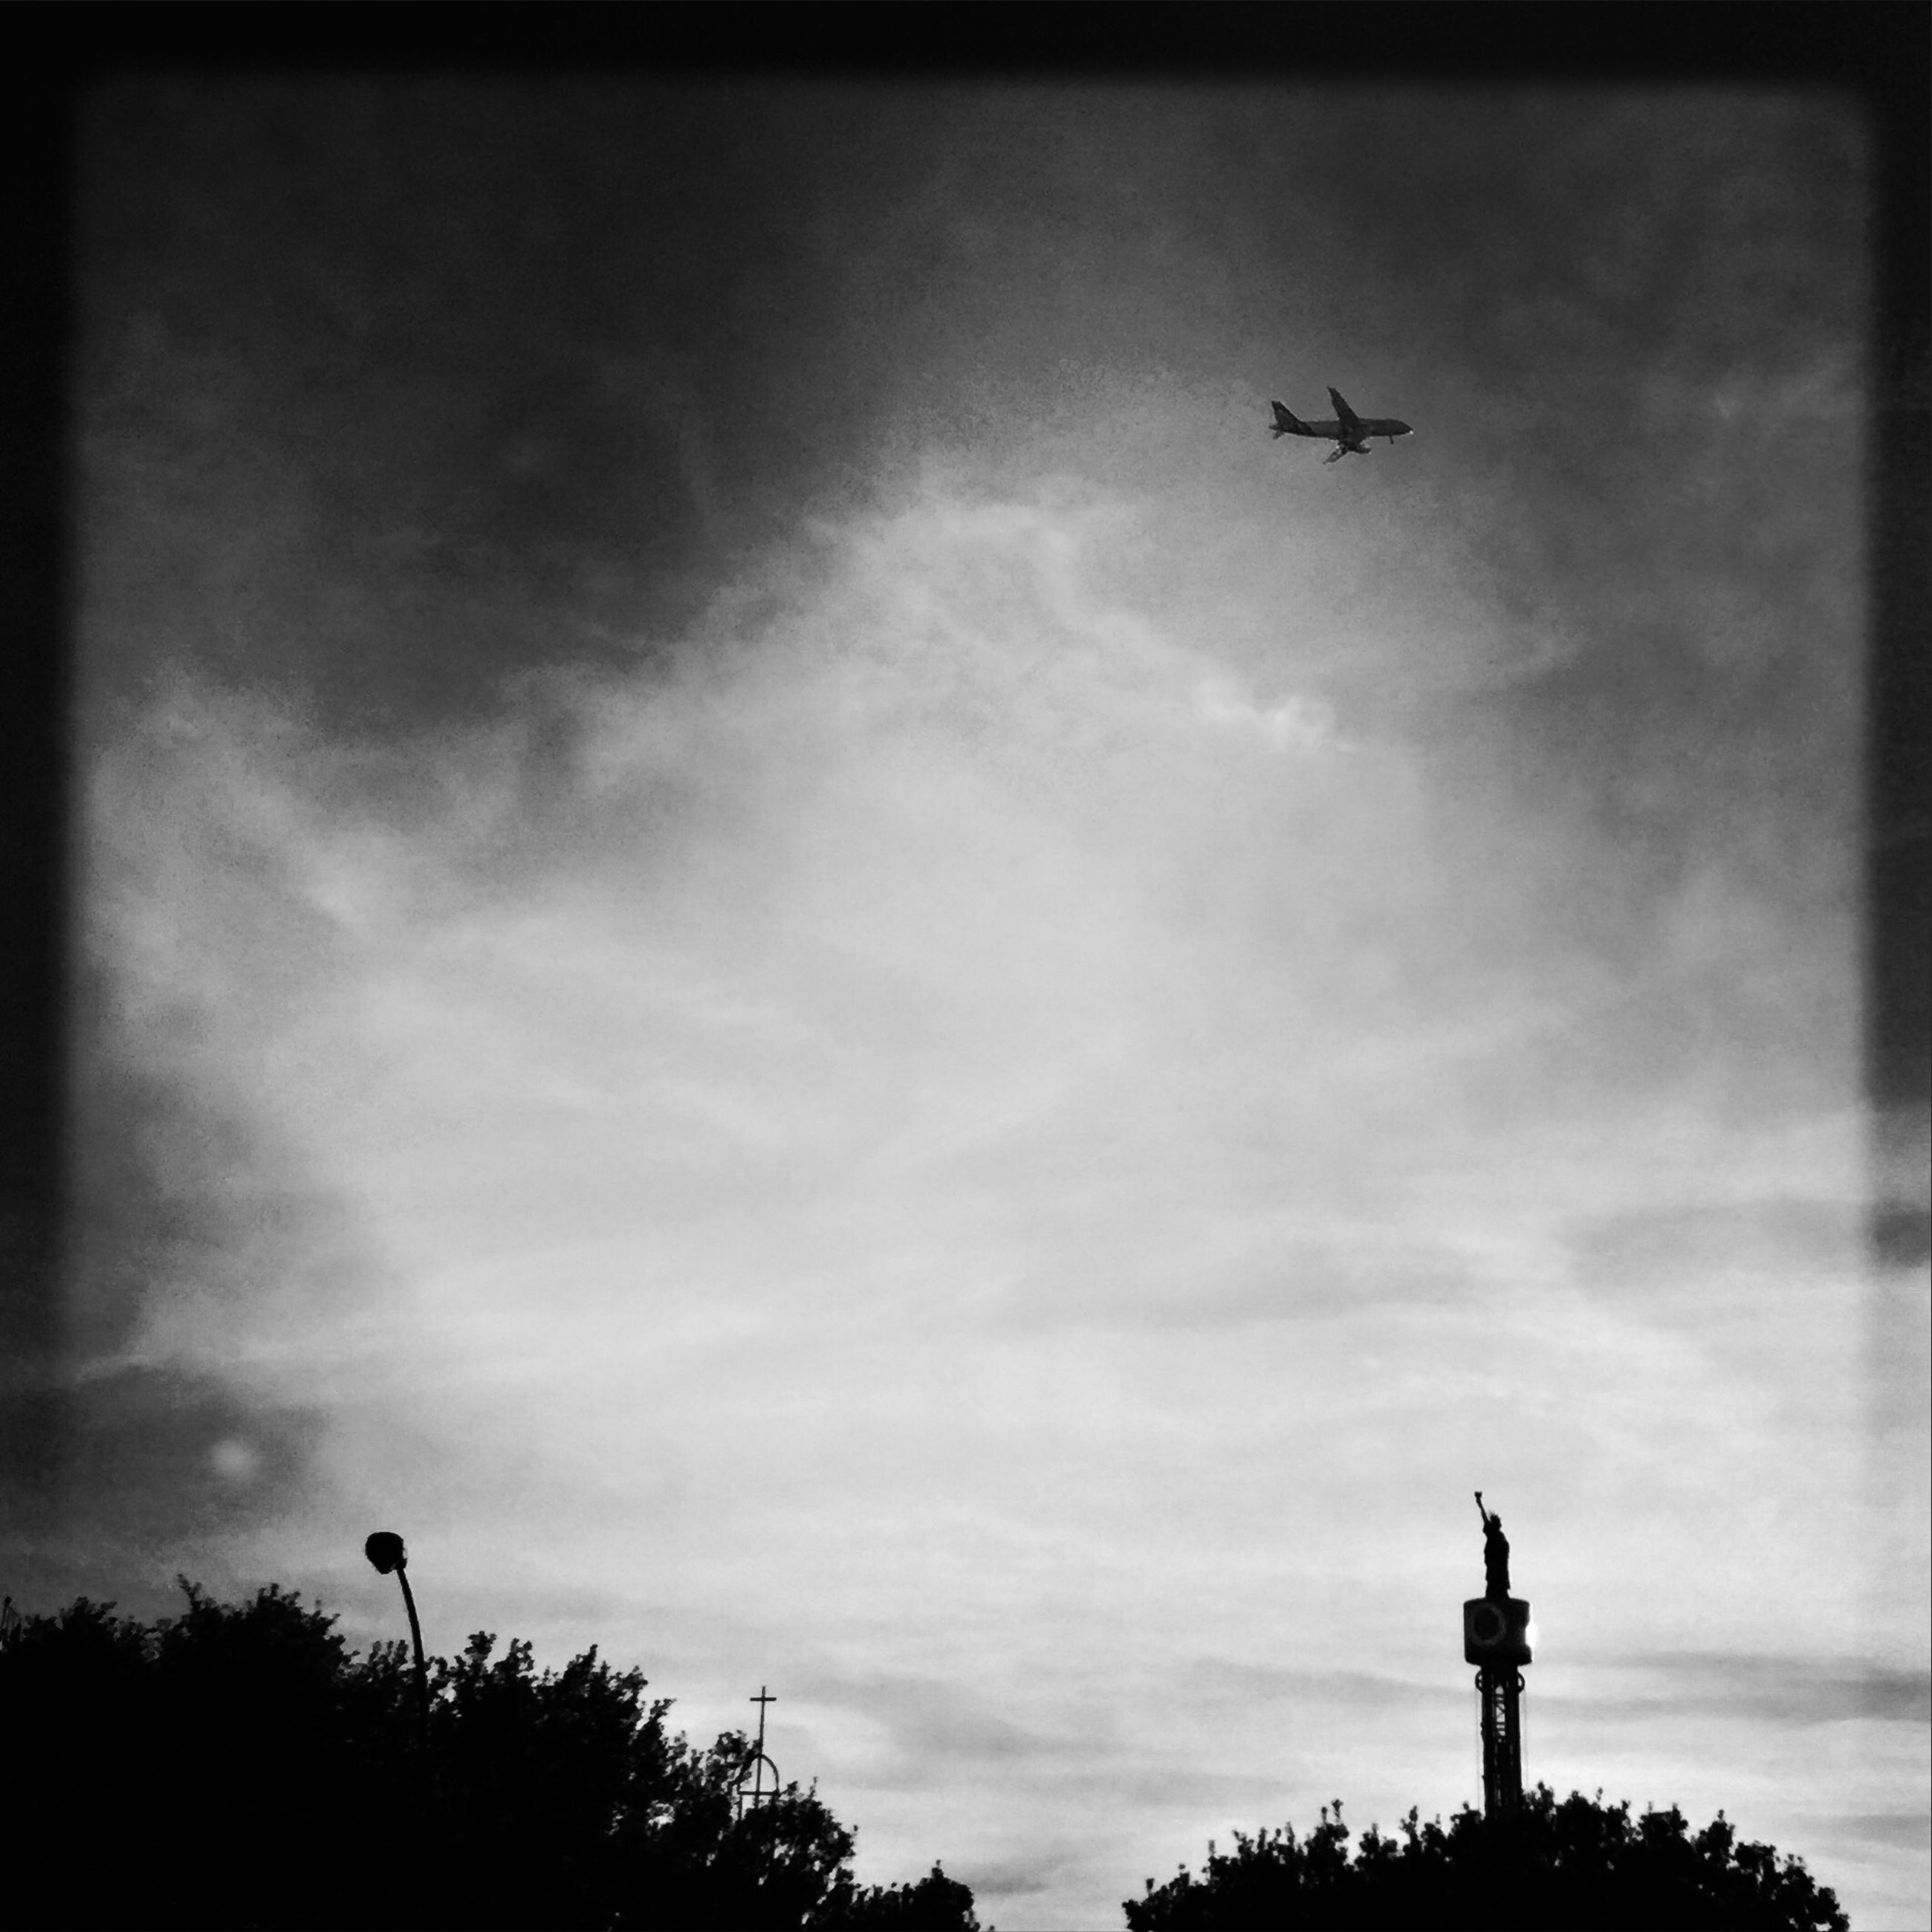 flying, sky, low angle view, silhouette, airplane, cloud - sky, no people, nature, outdoors, tree, day, air vehicle